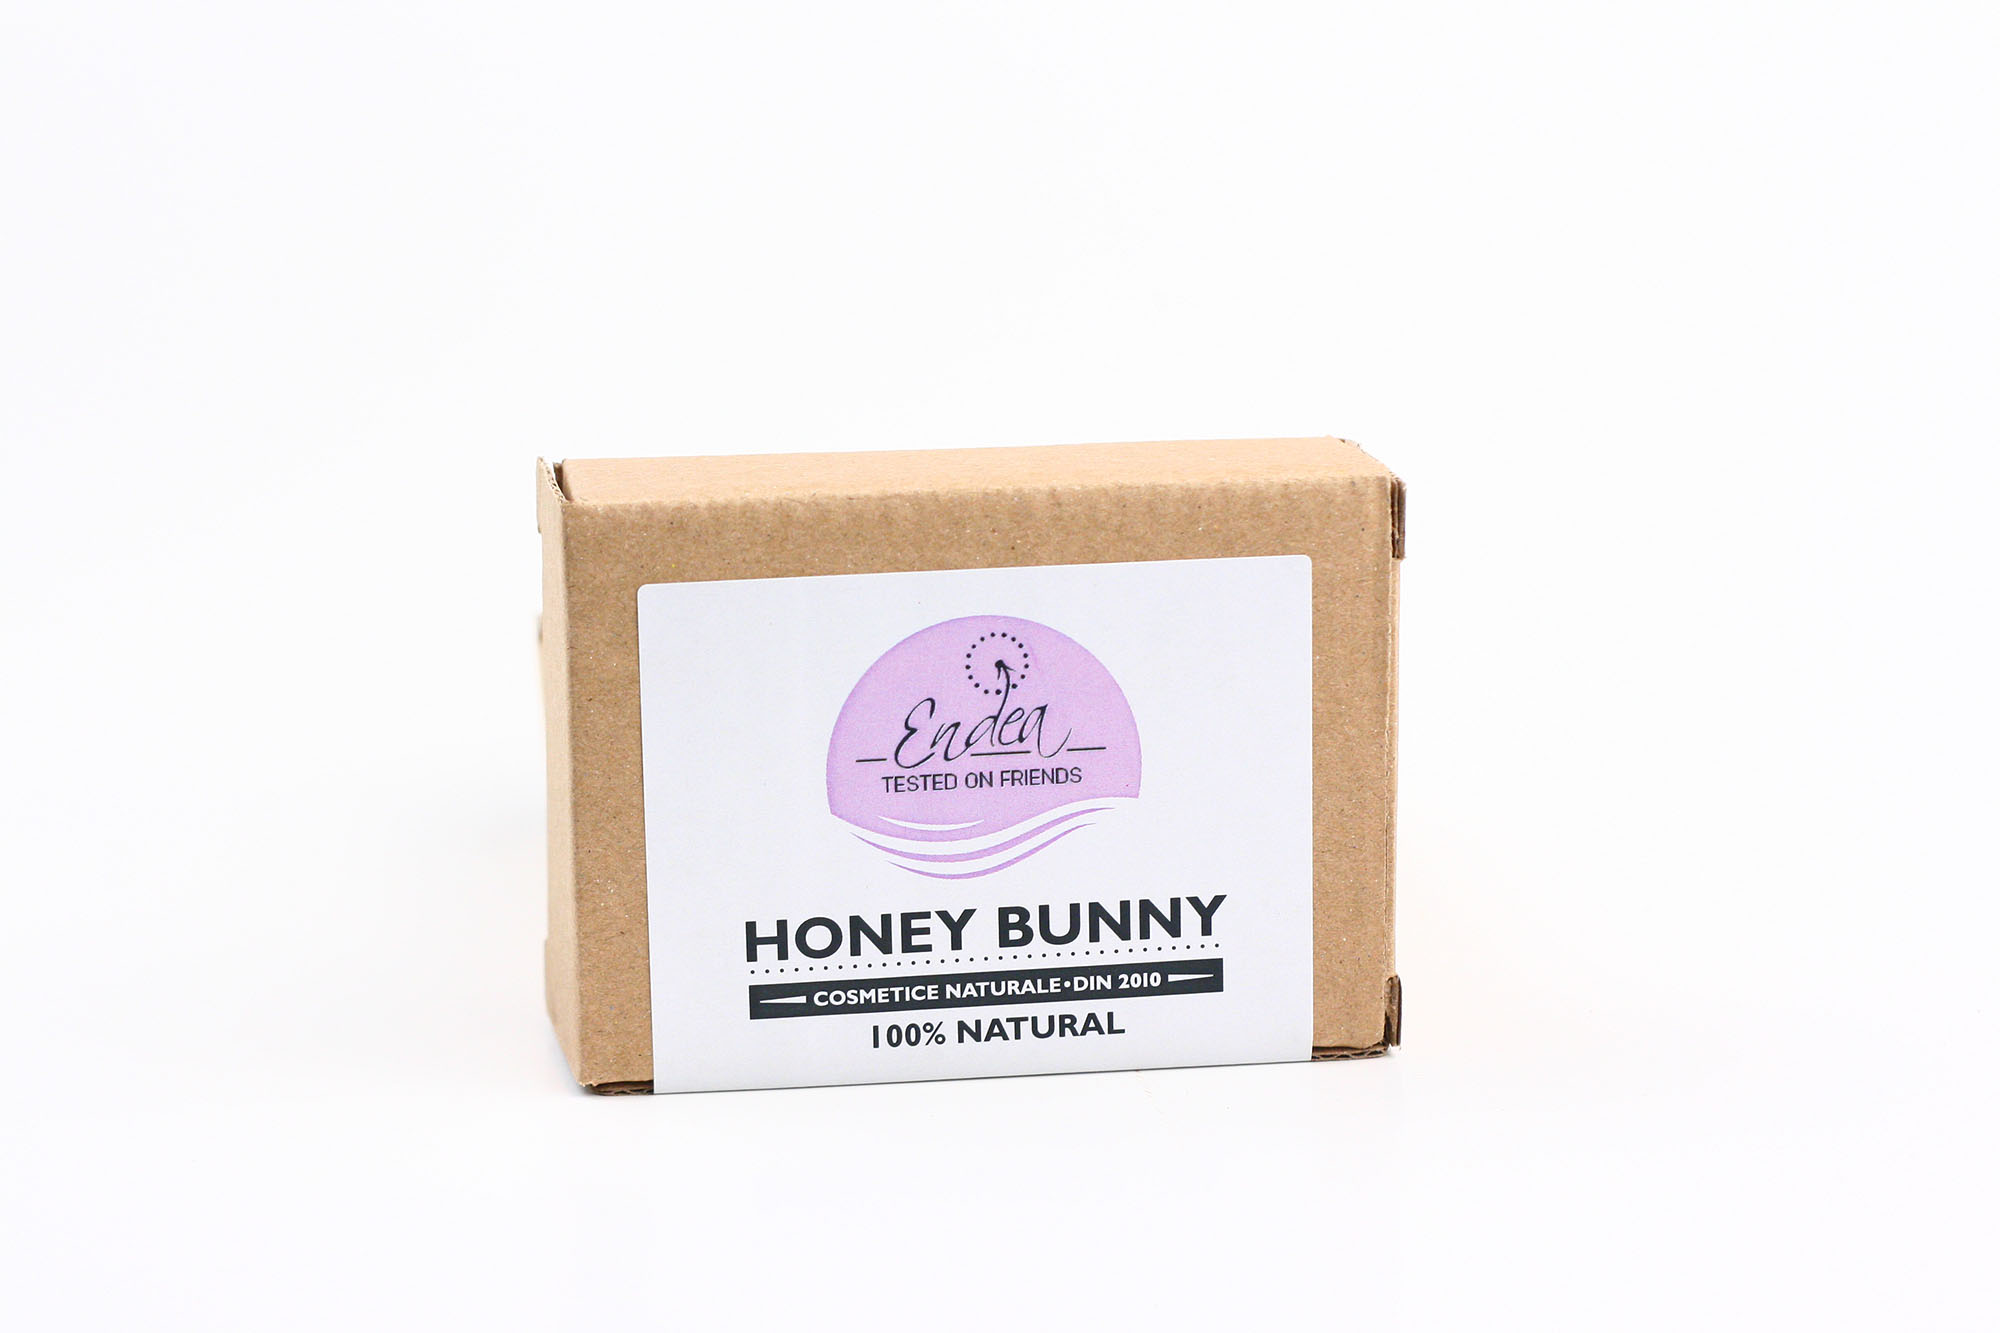 Săpun hidratant cu miere & lapte de capră - Honey Bunny | Endea - Tested on friends